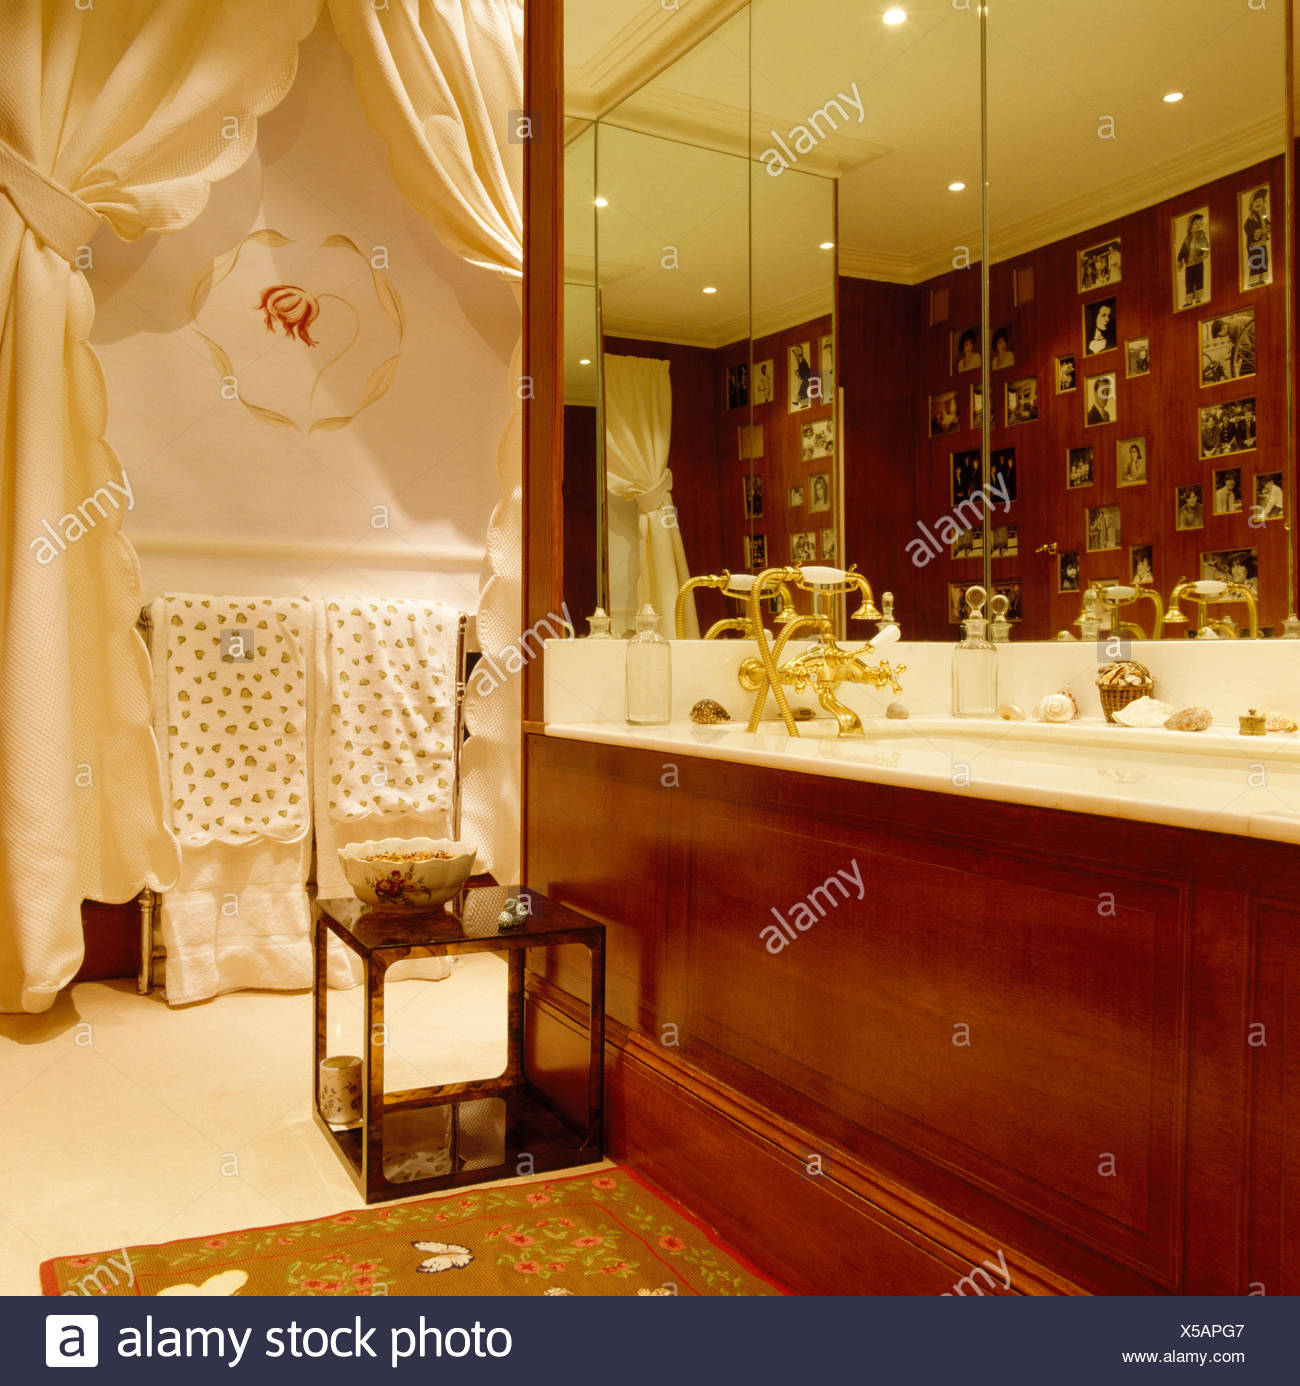 Mirrored wall above bath with polished wood panel in bathroom with small table and window with cream drapes - Stock Image